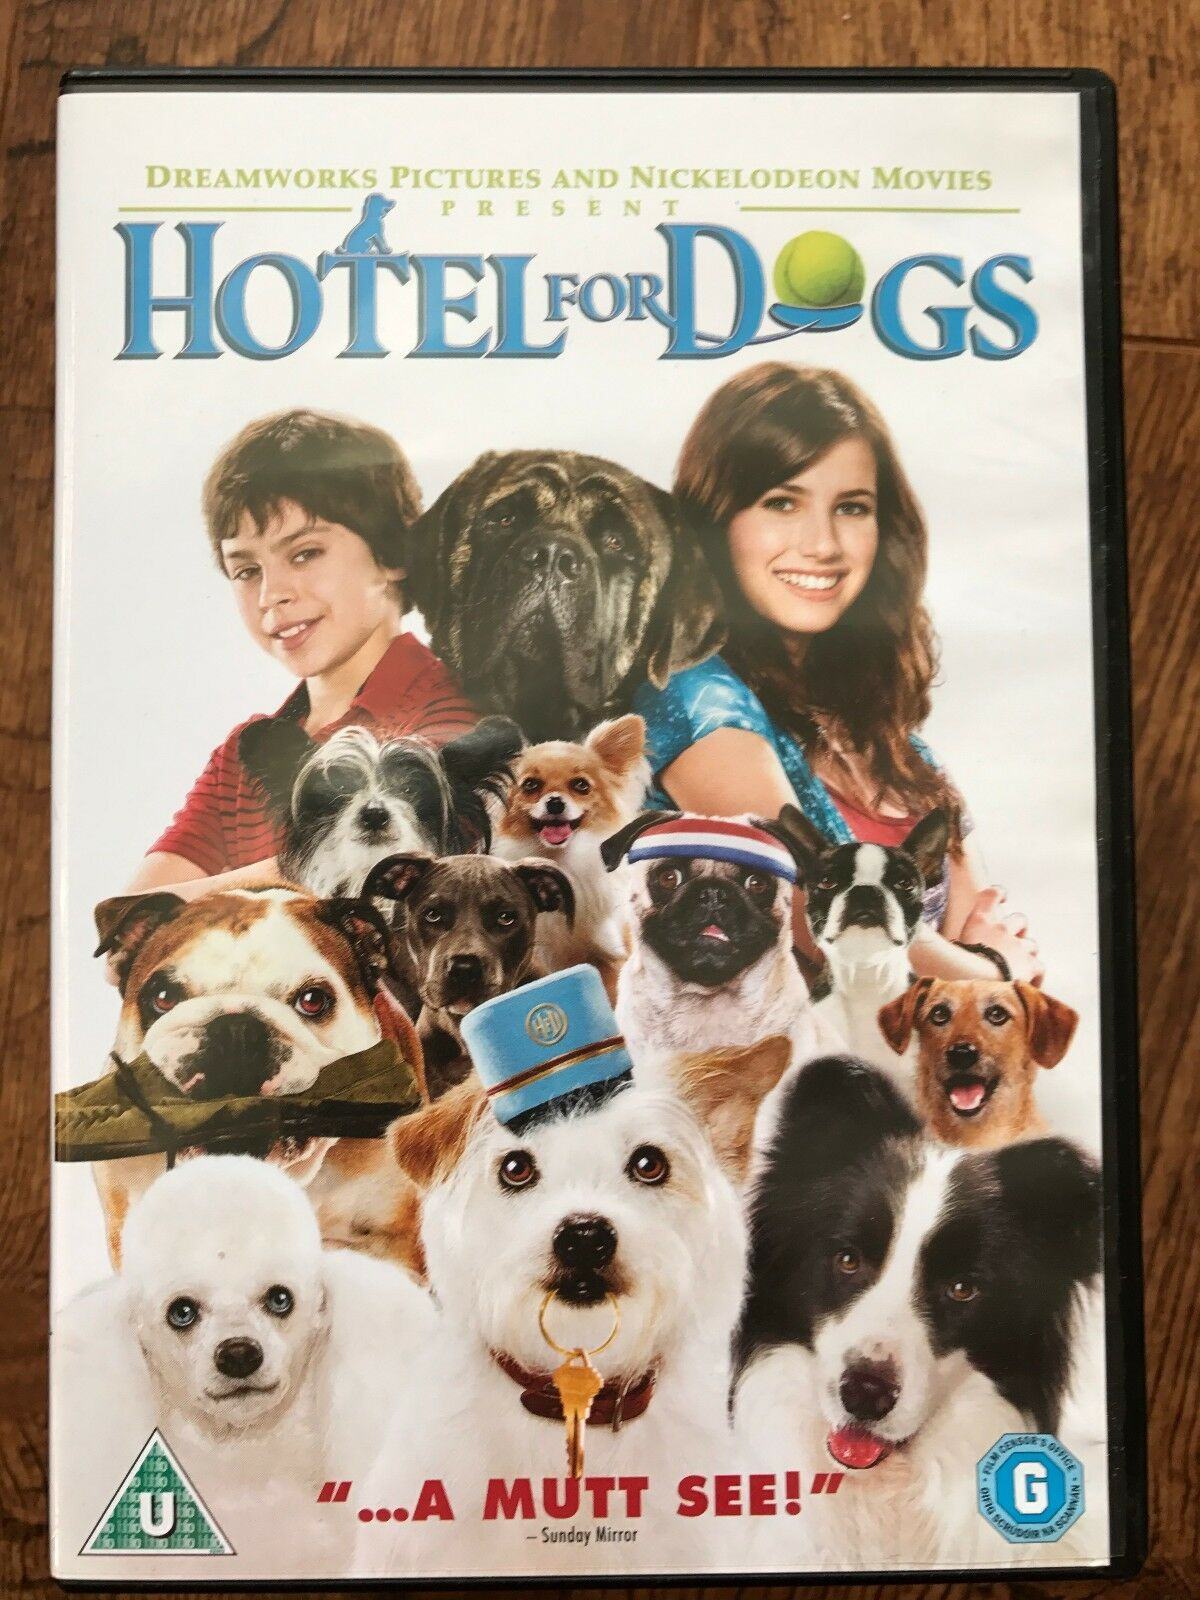 All Comedy Movies In 2009 hotel for dogs dvd 2009 family comedy with kevin dillon and emma roberts